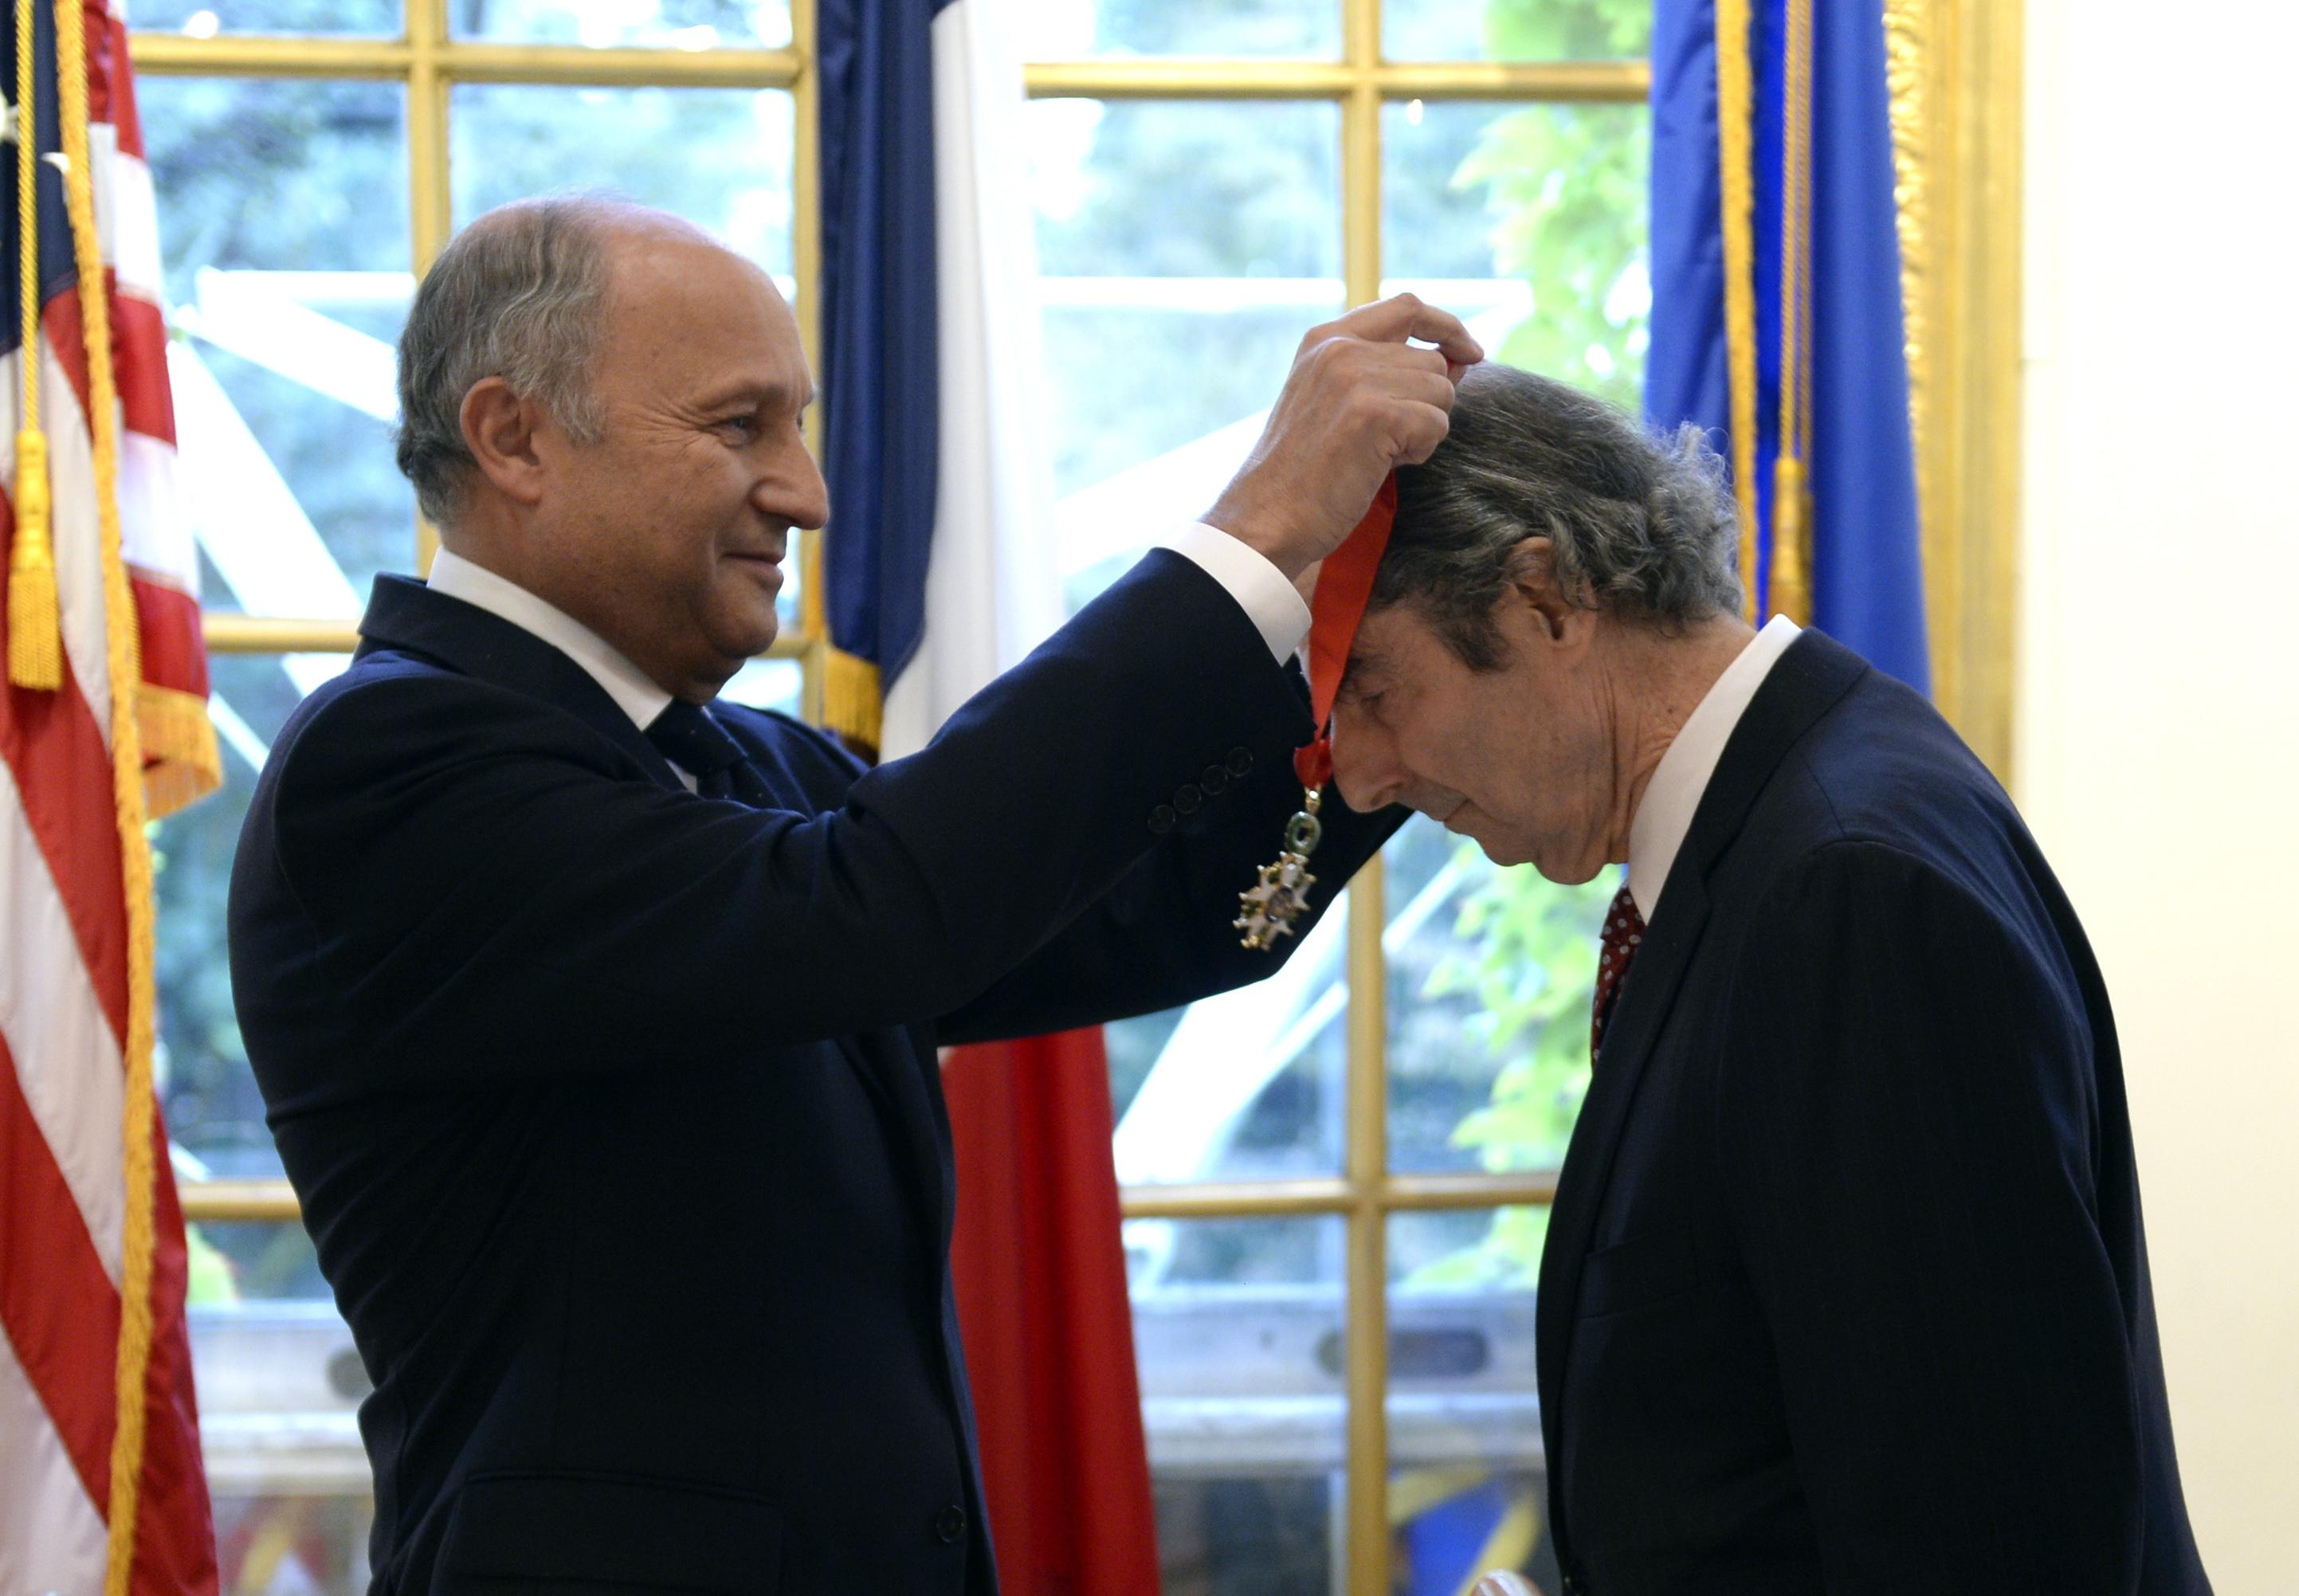 French Foreign Minister Laurent Fabius puts a medal around the neck of Philip Roth.